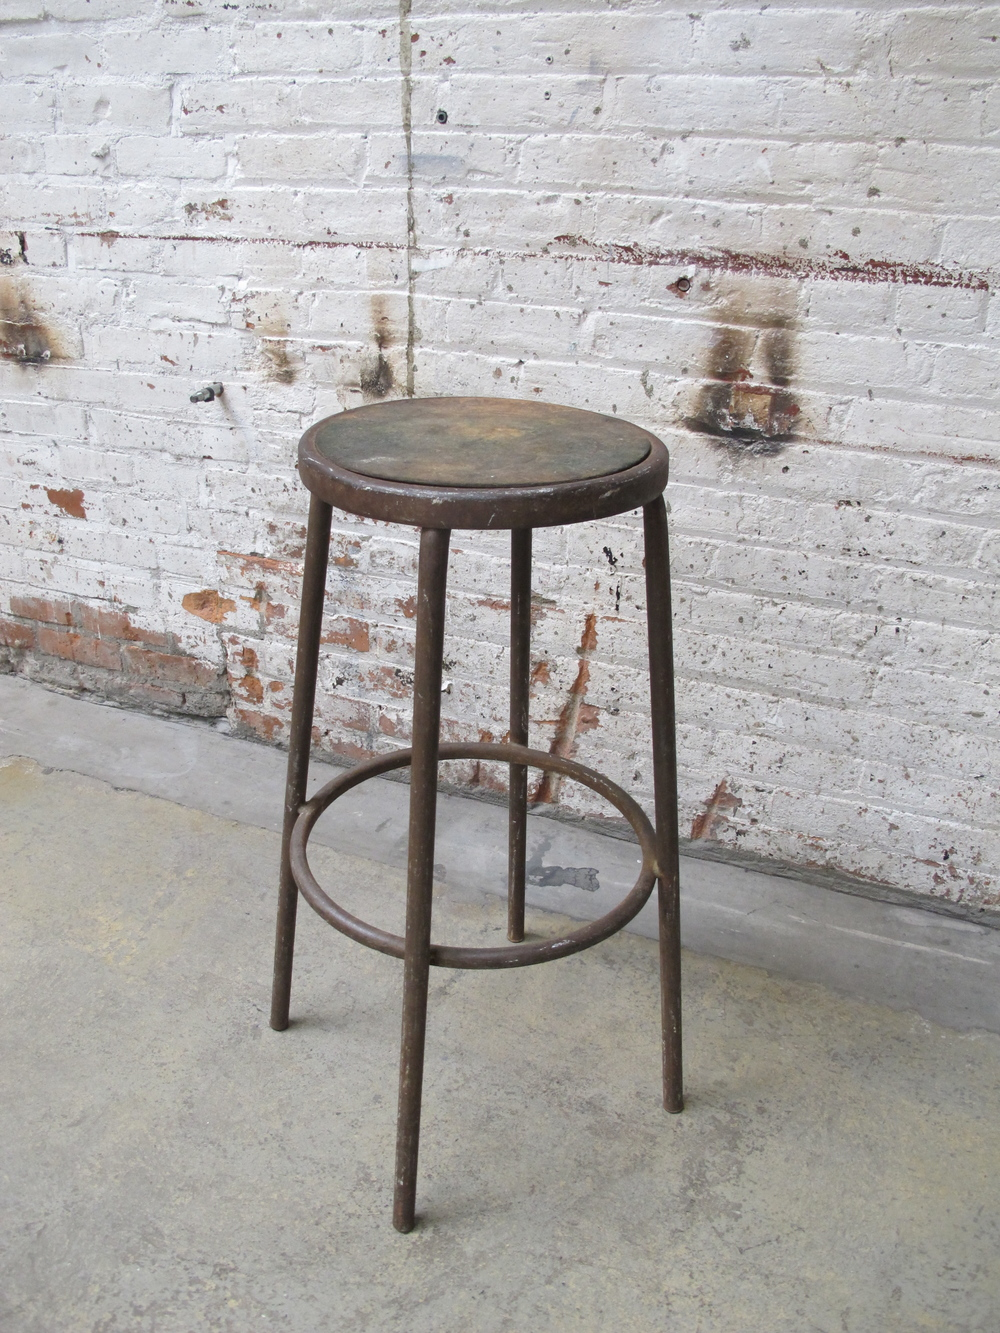 World Traveler Stool $55